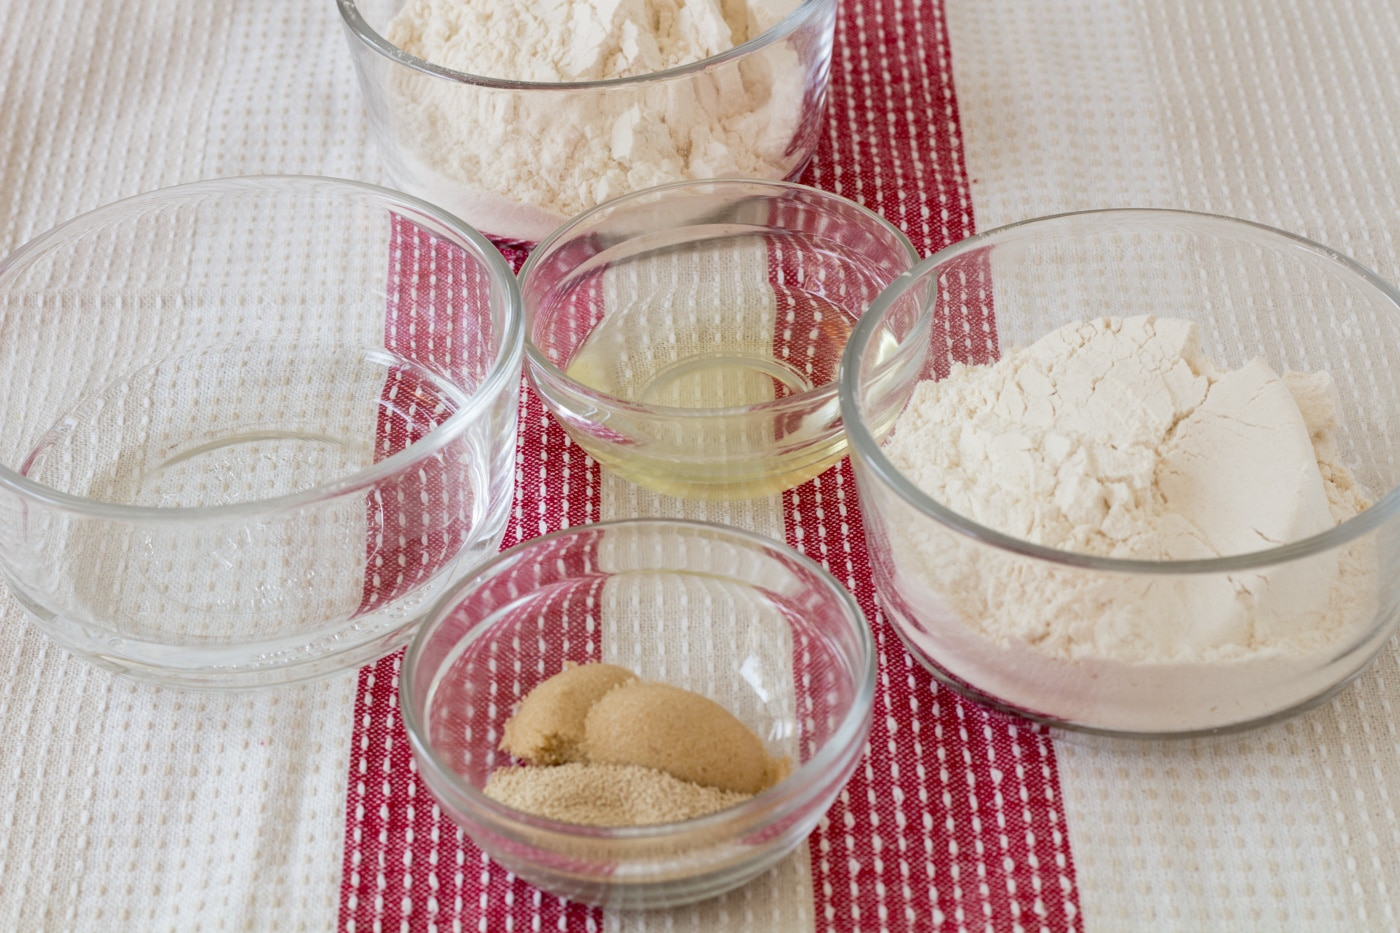 Yeast pizza dough ingredients